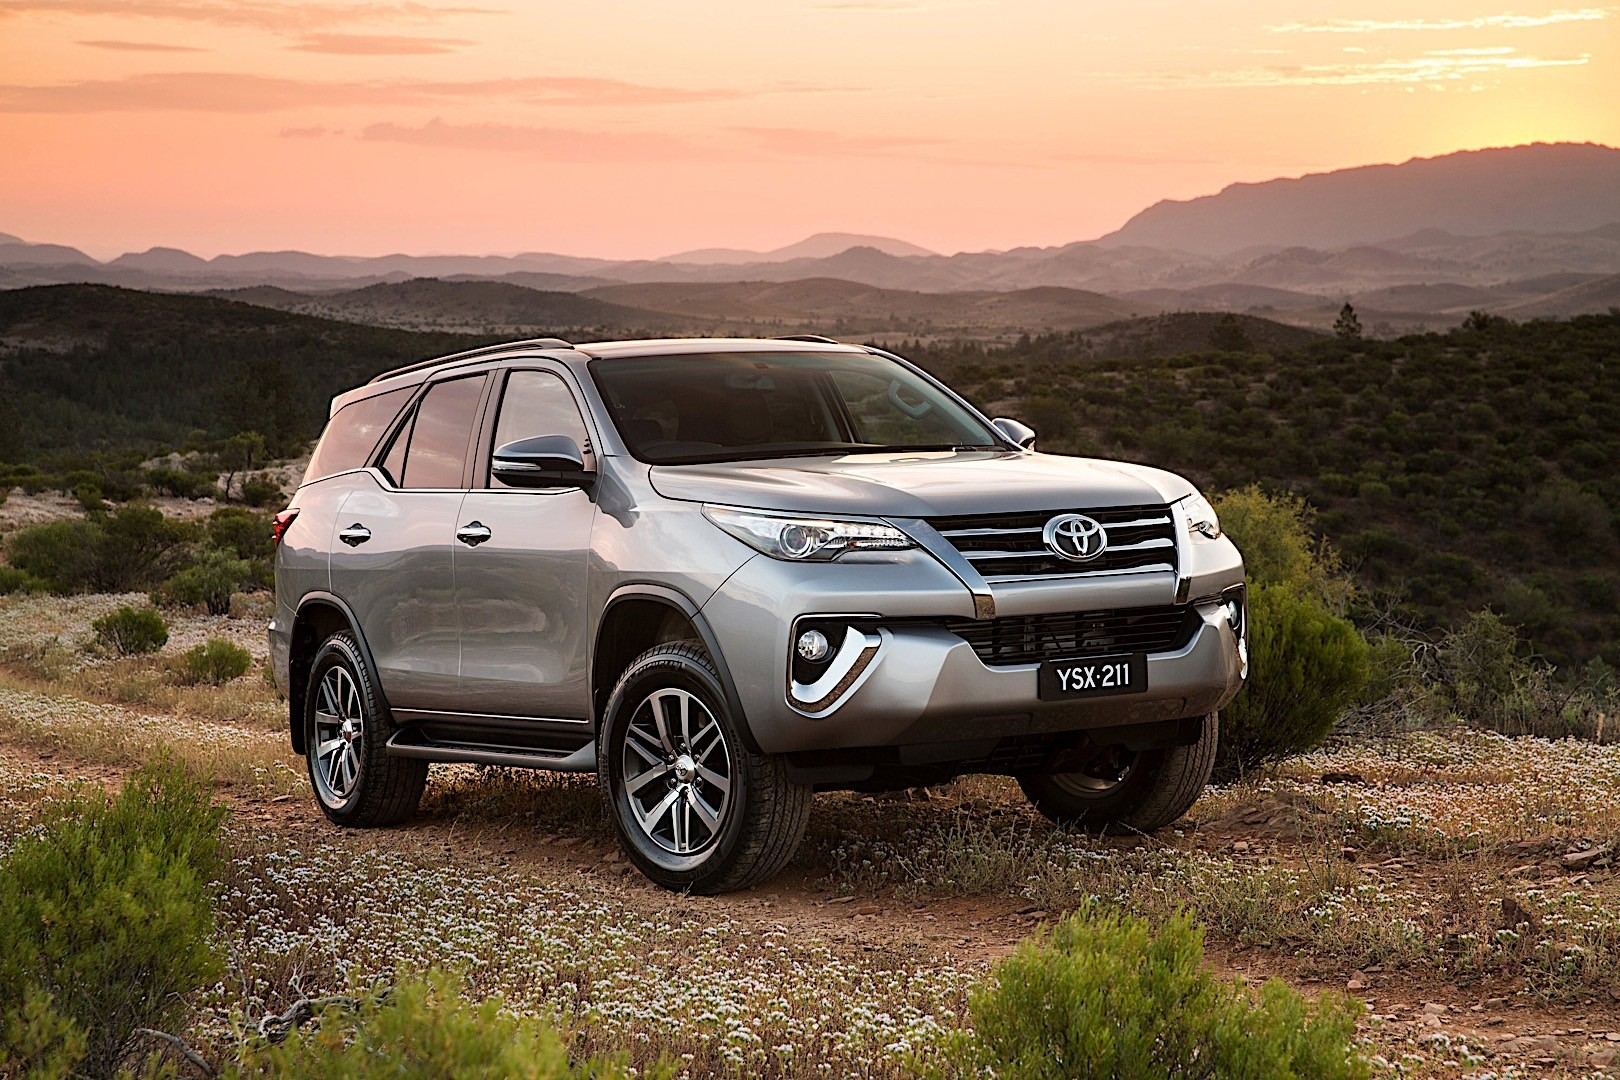 toyota fortuner specs  u0026 photos - 2015  2016  2017  2018  2019  2020